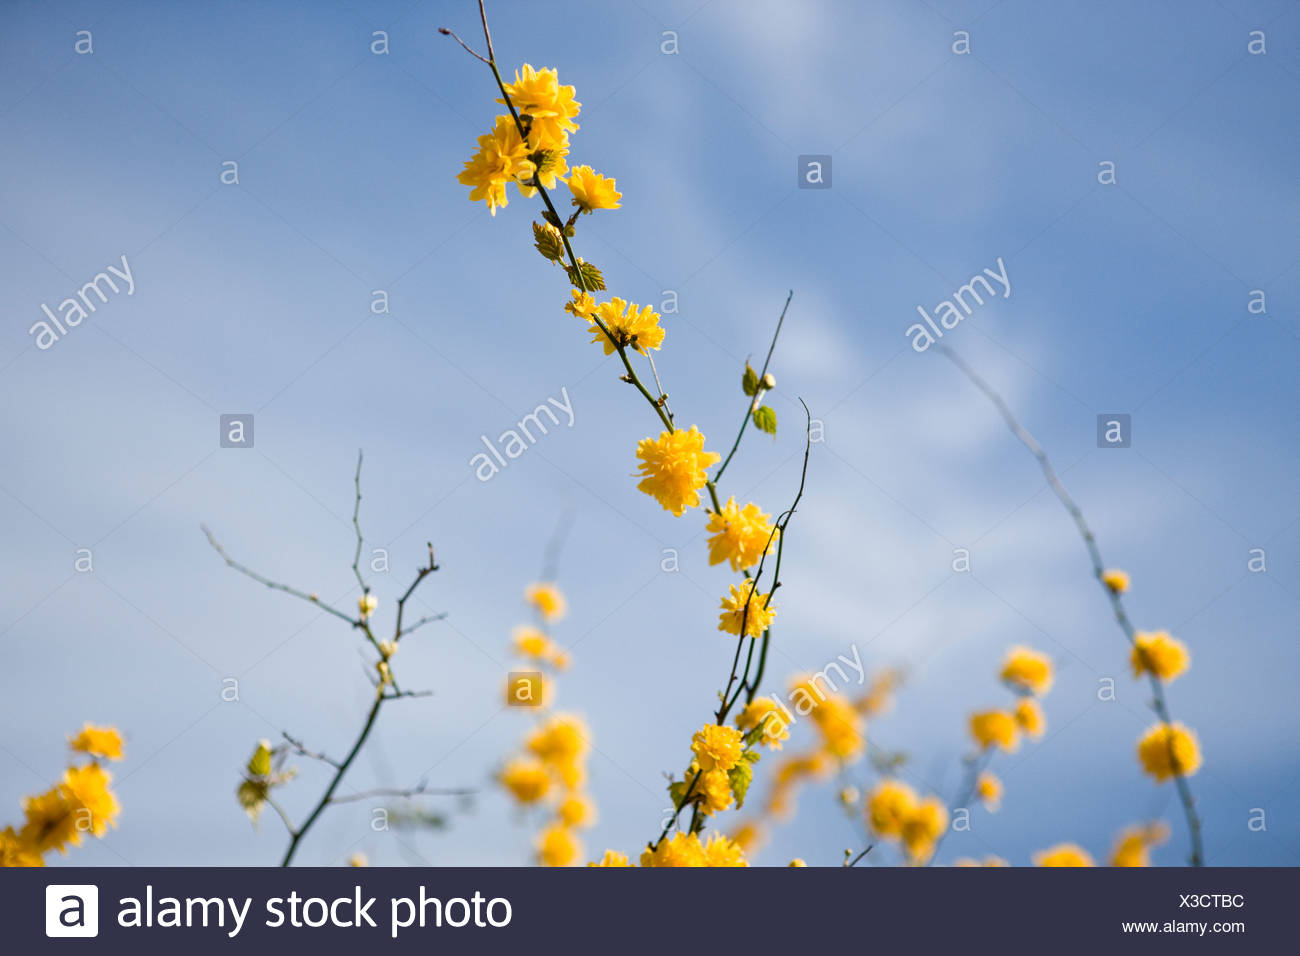 Branches Of Kerria Japonica With Yellow Flowers In Spring Stock